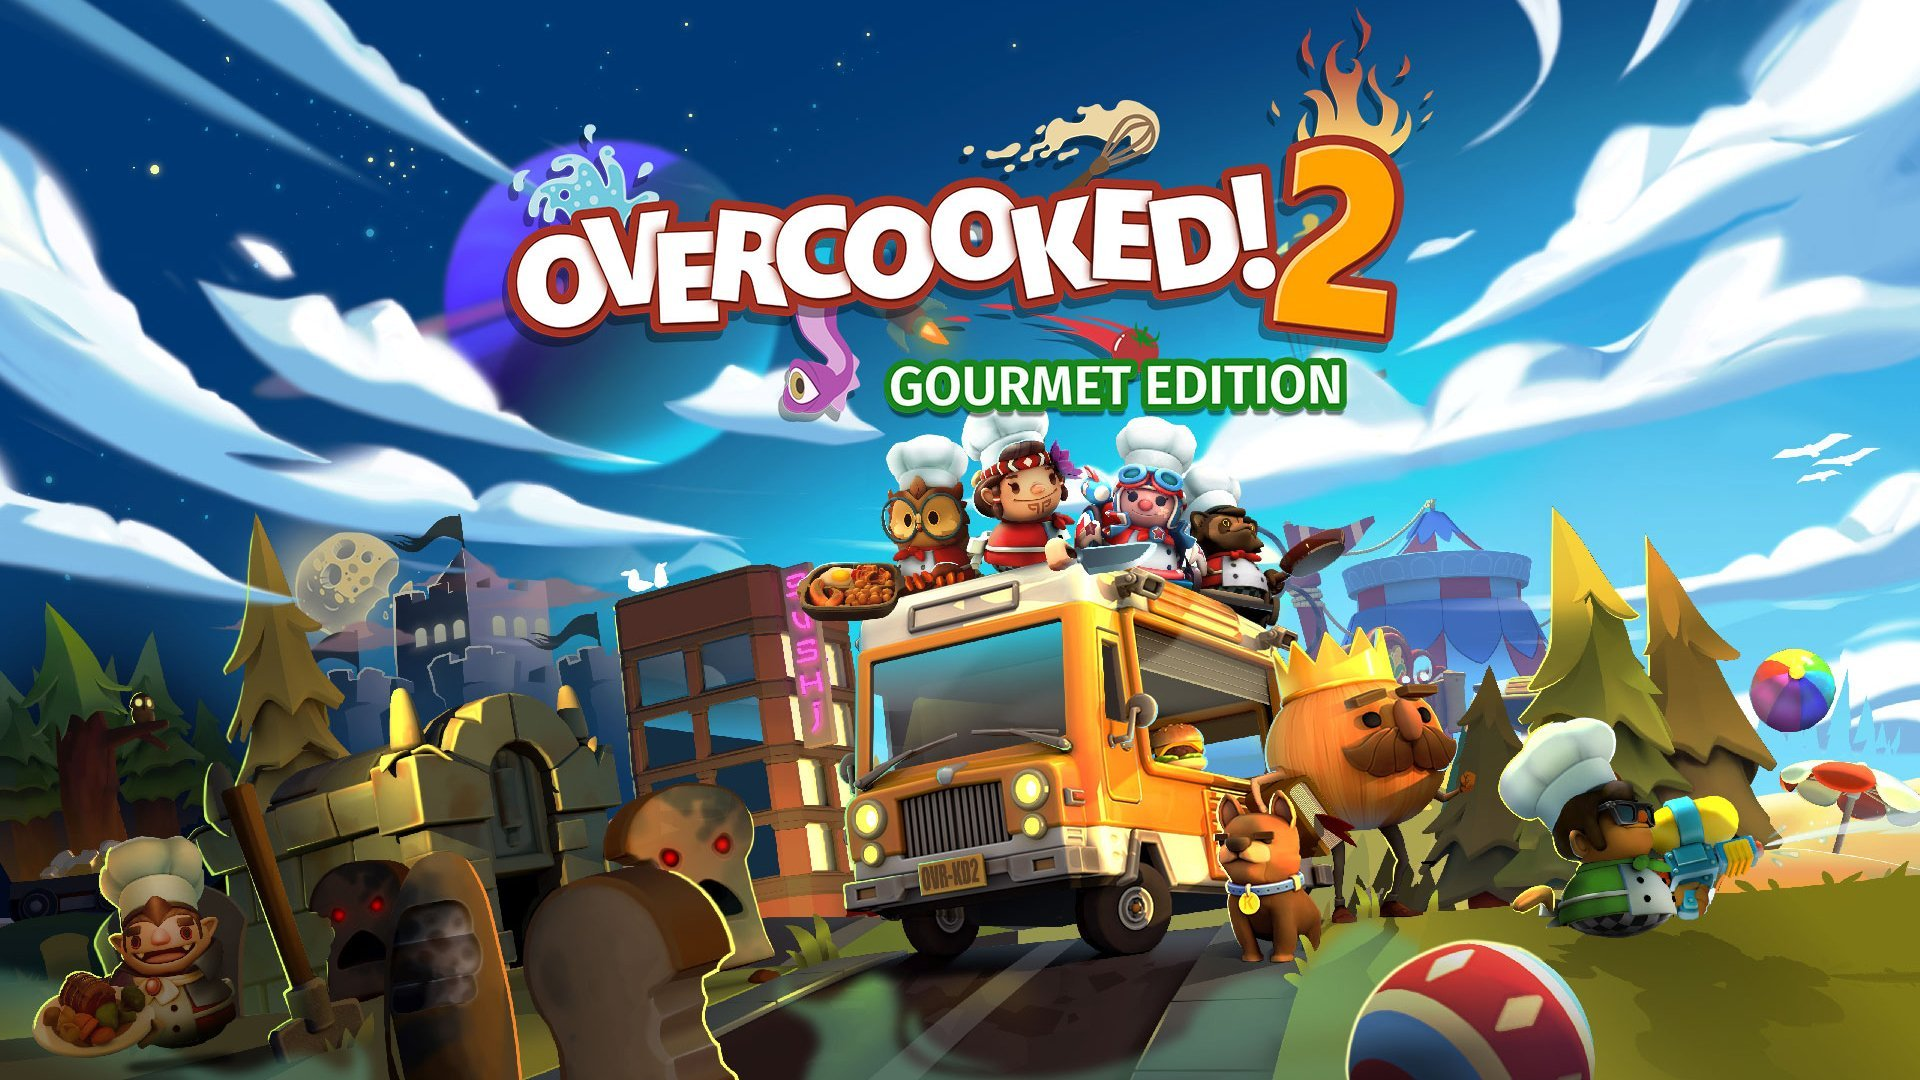 Overcooked! 2: Gourmet Edition 煮過頭2 美食家版